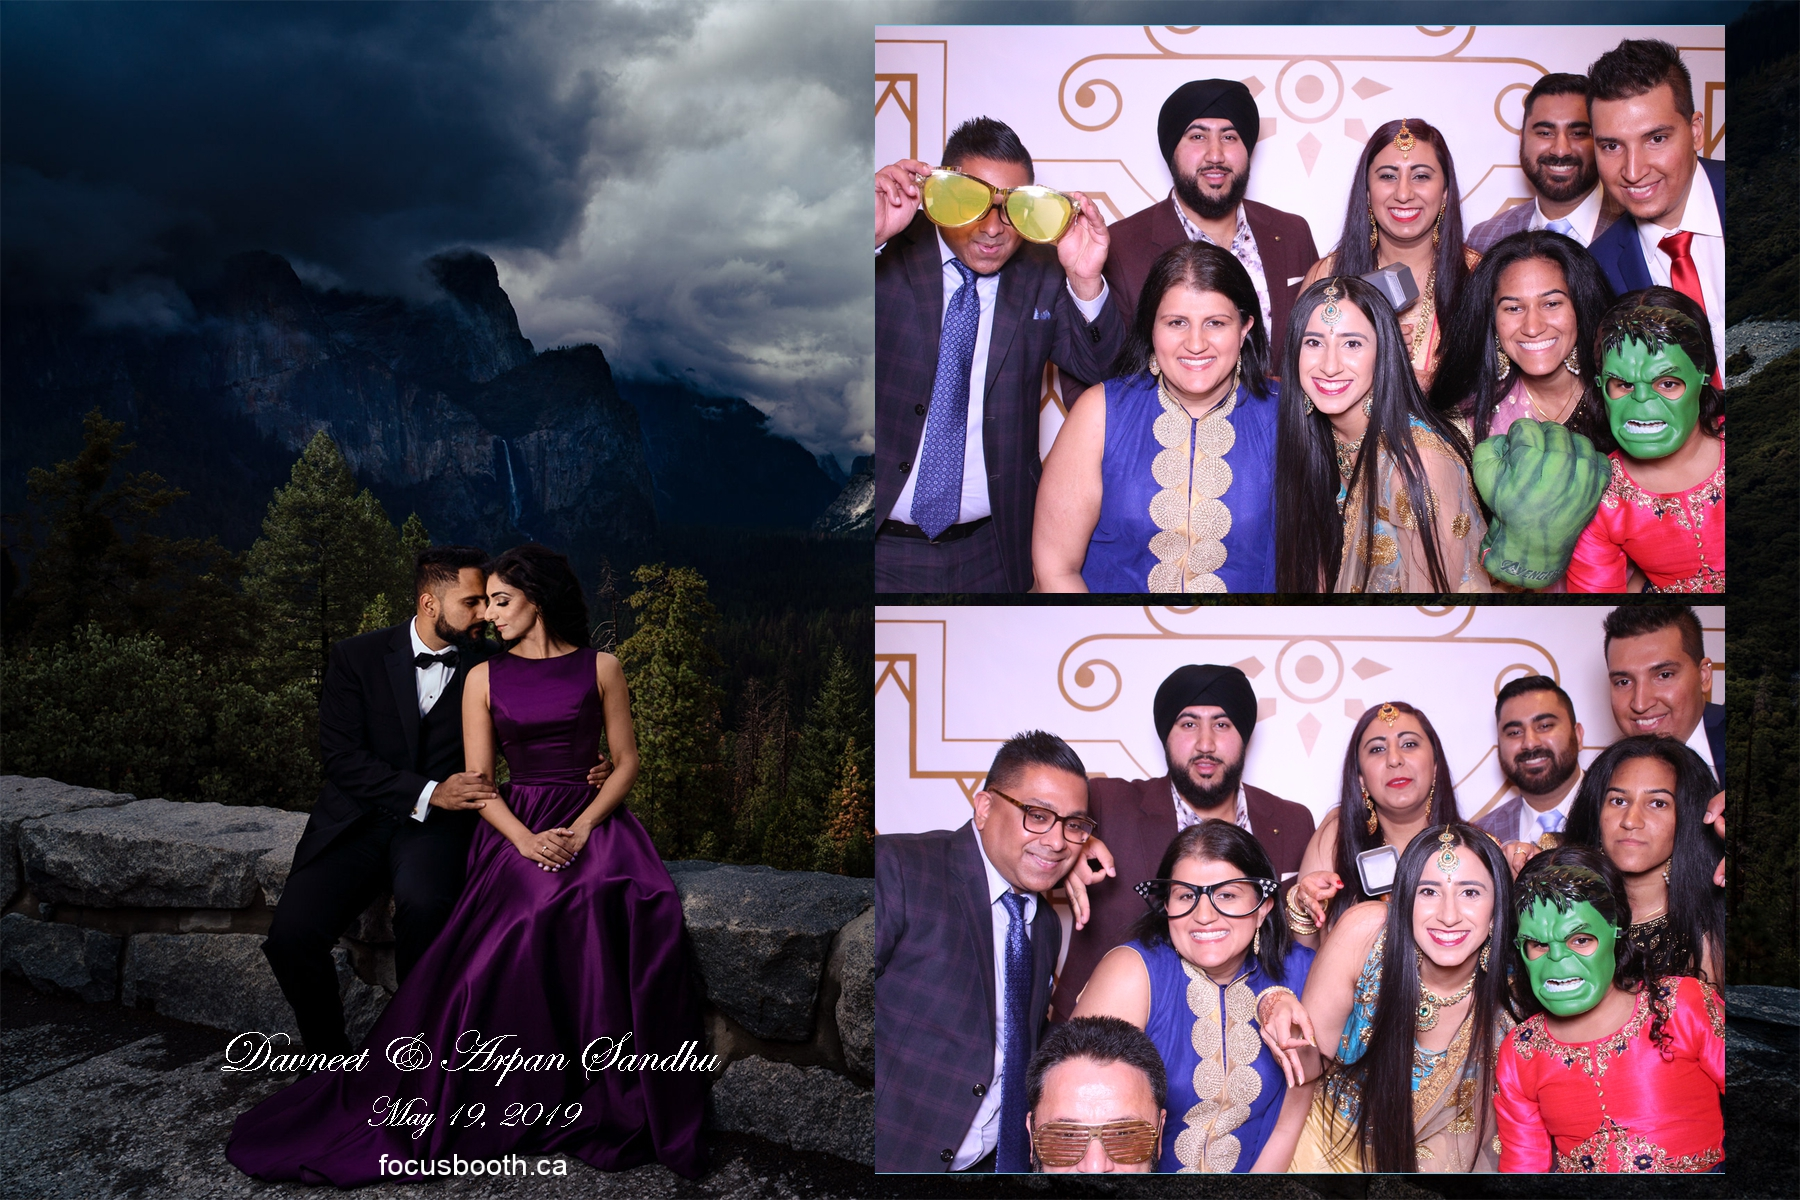 wedding party celebration event photo booth